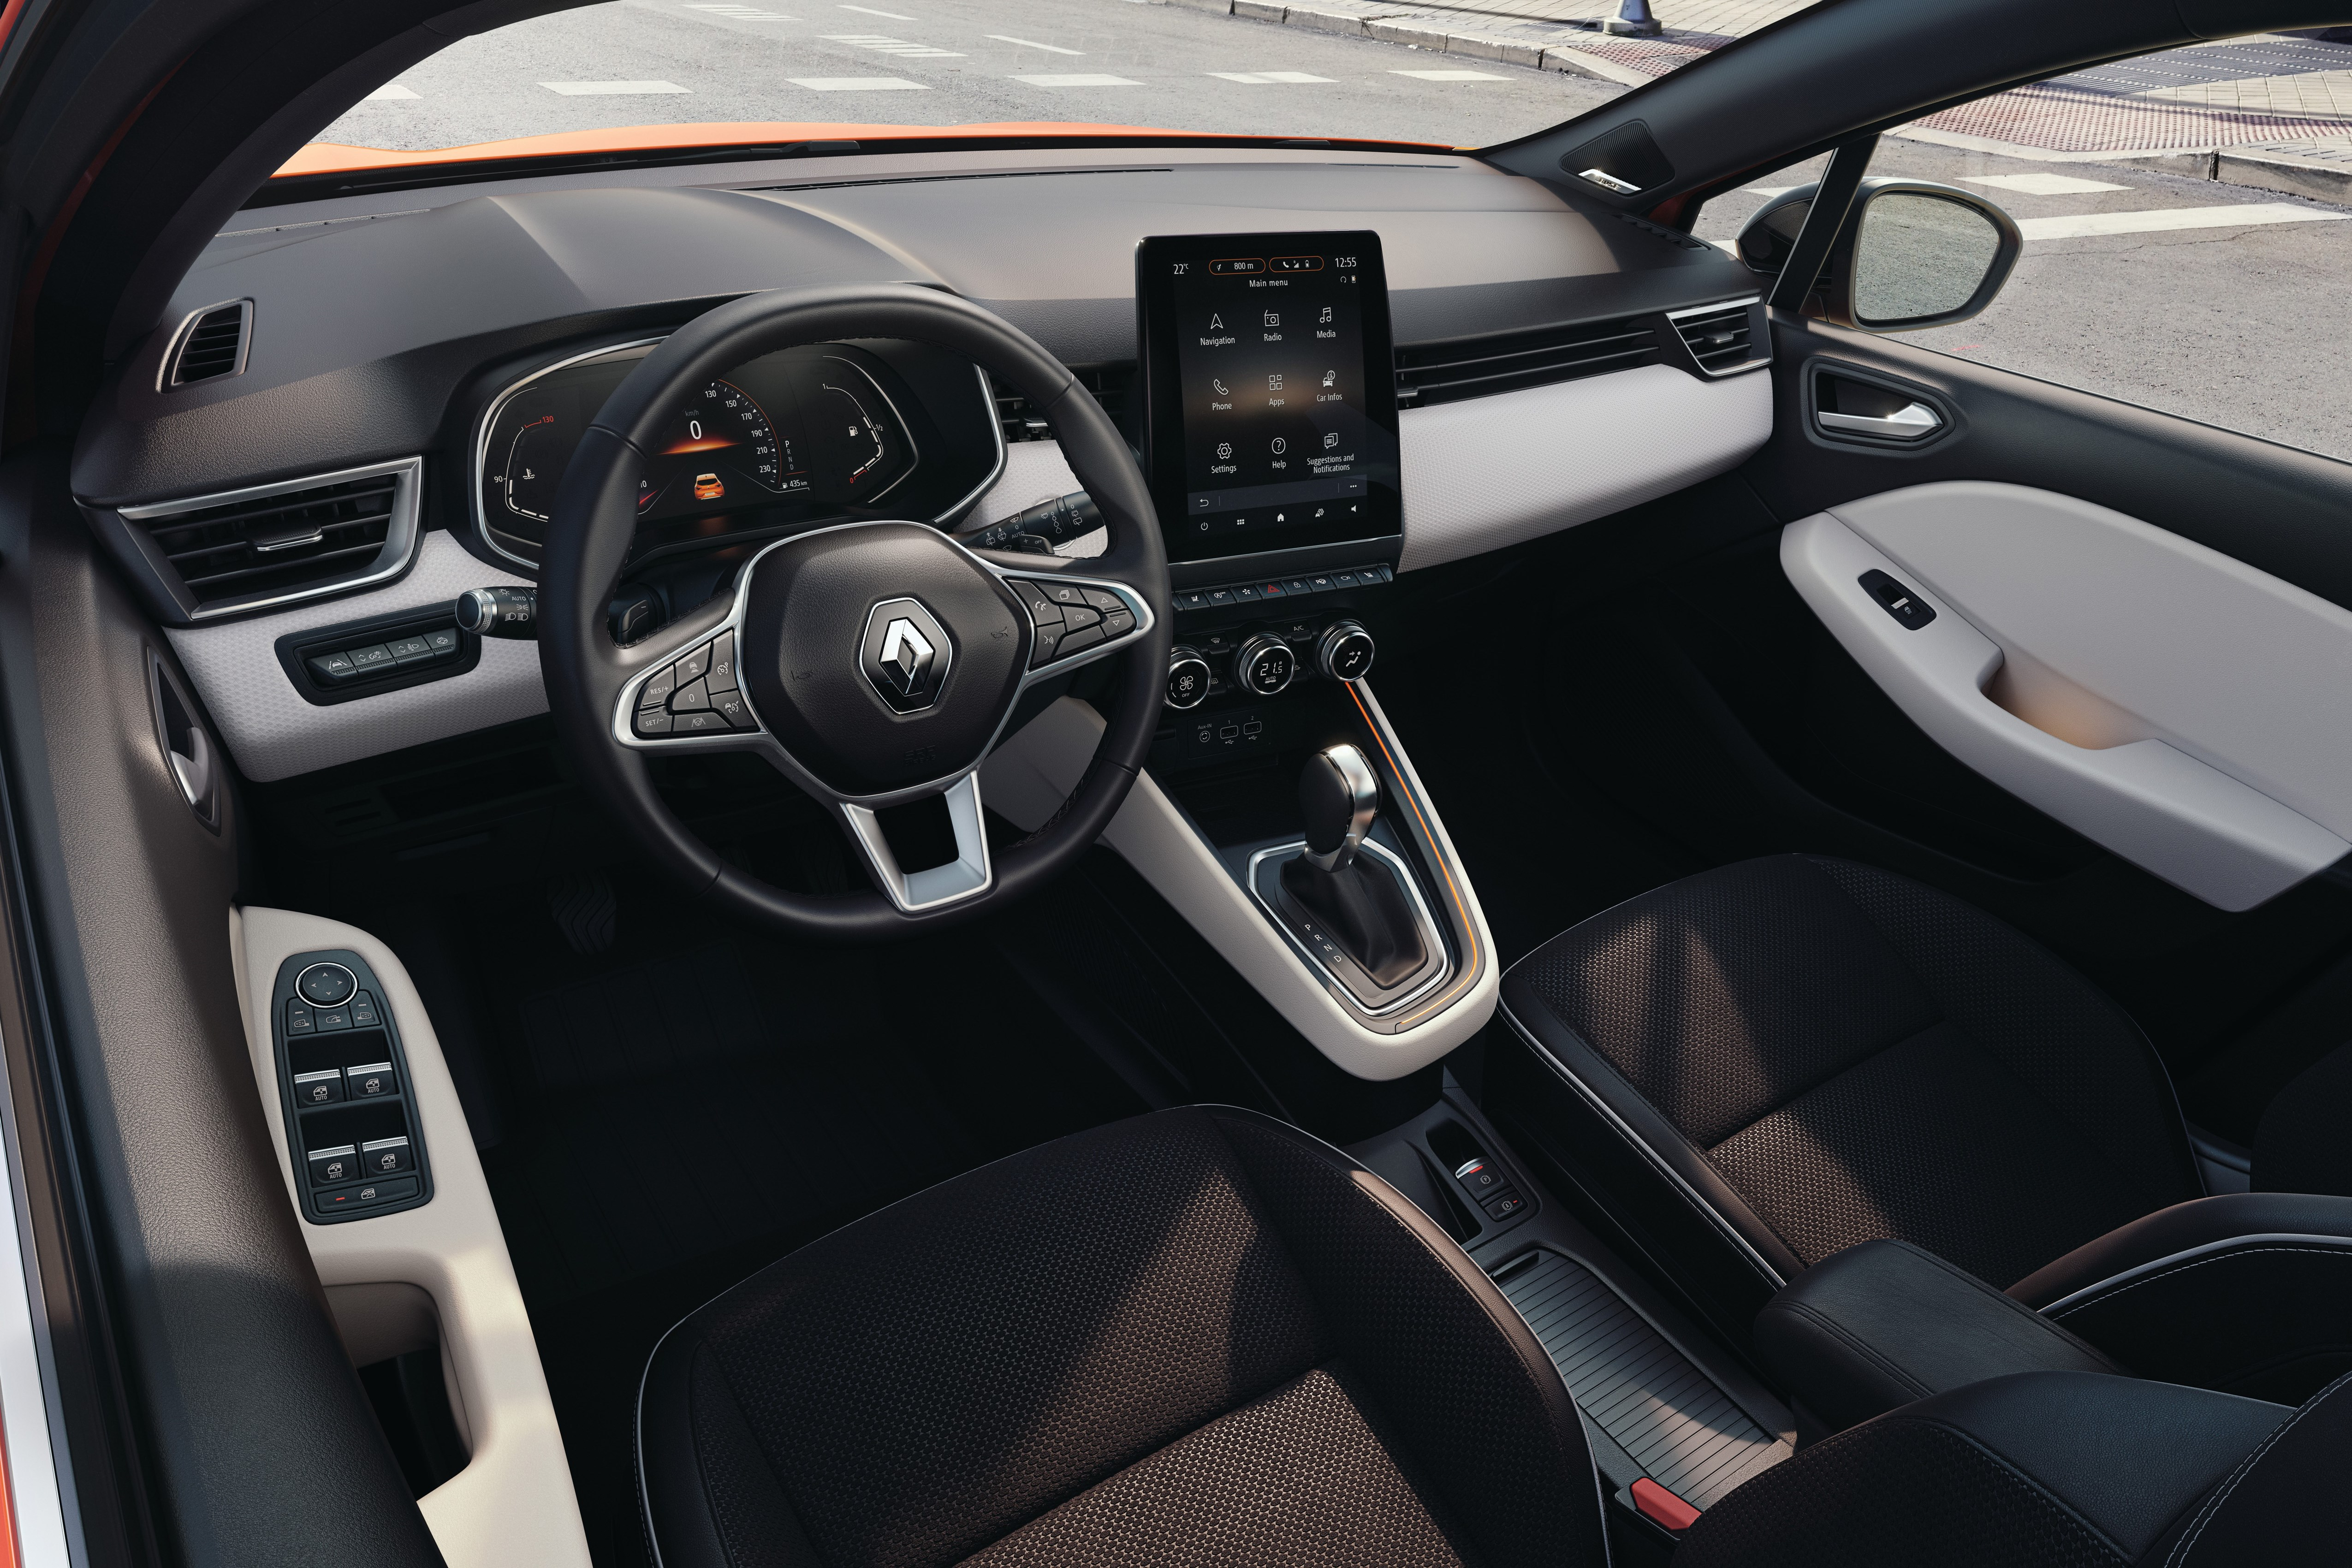 The New Renault Clio The French Bestseller Features A 93 Inch